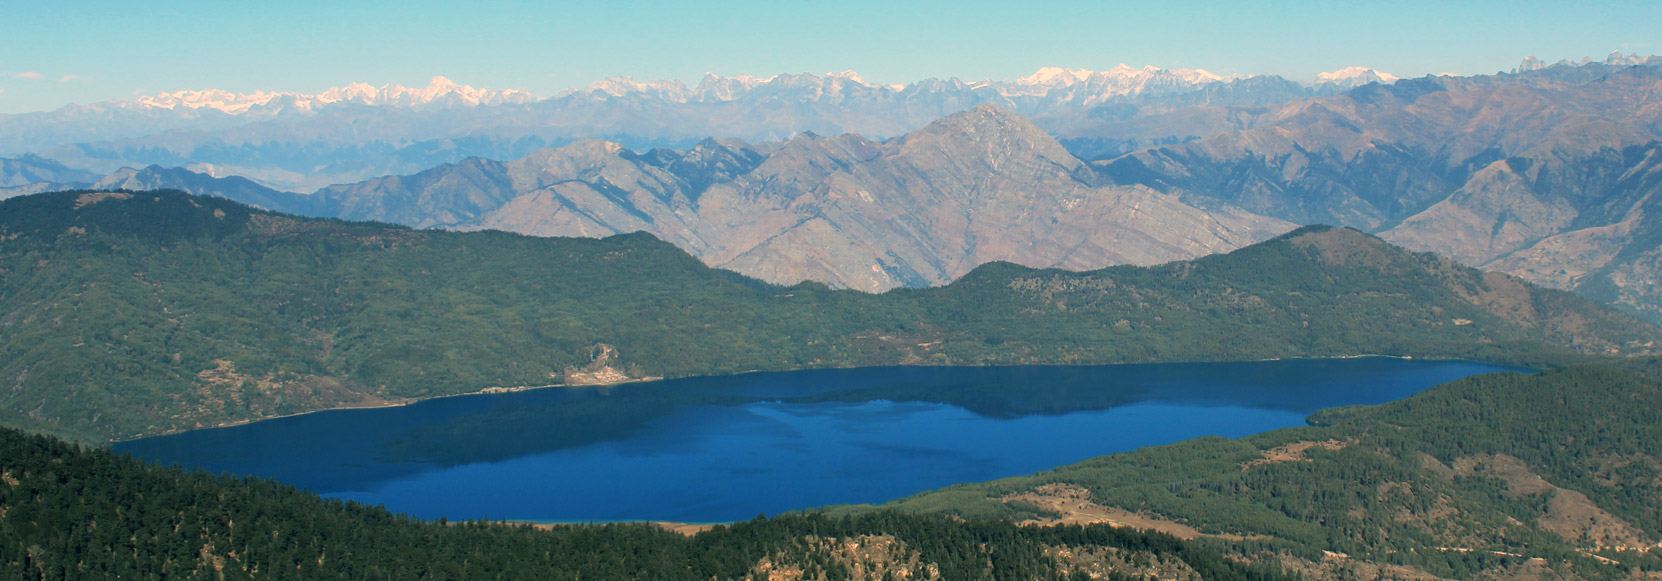 View from Rara Lake